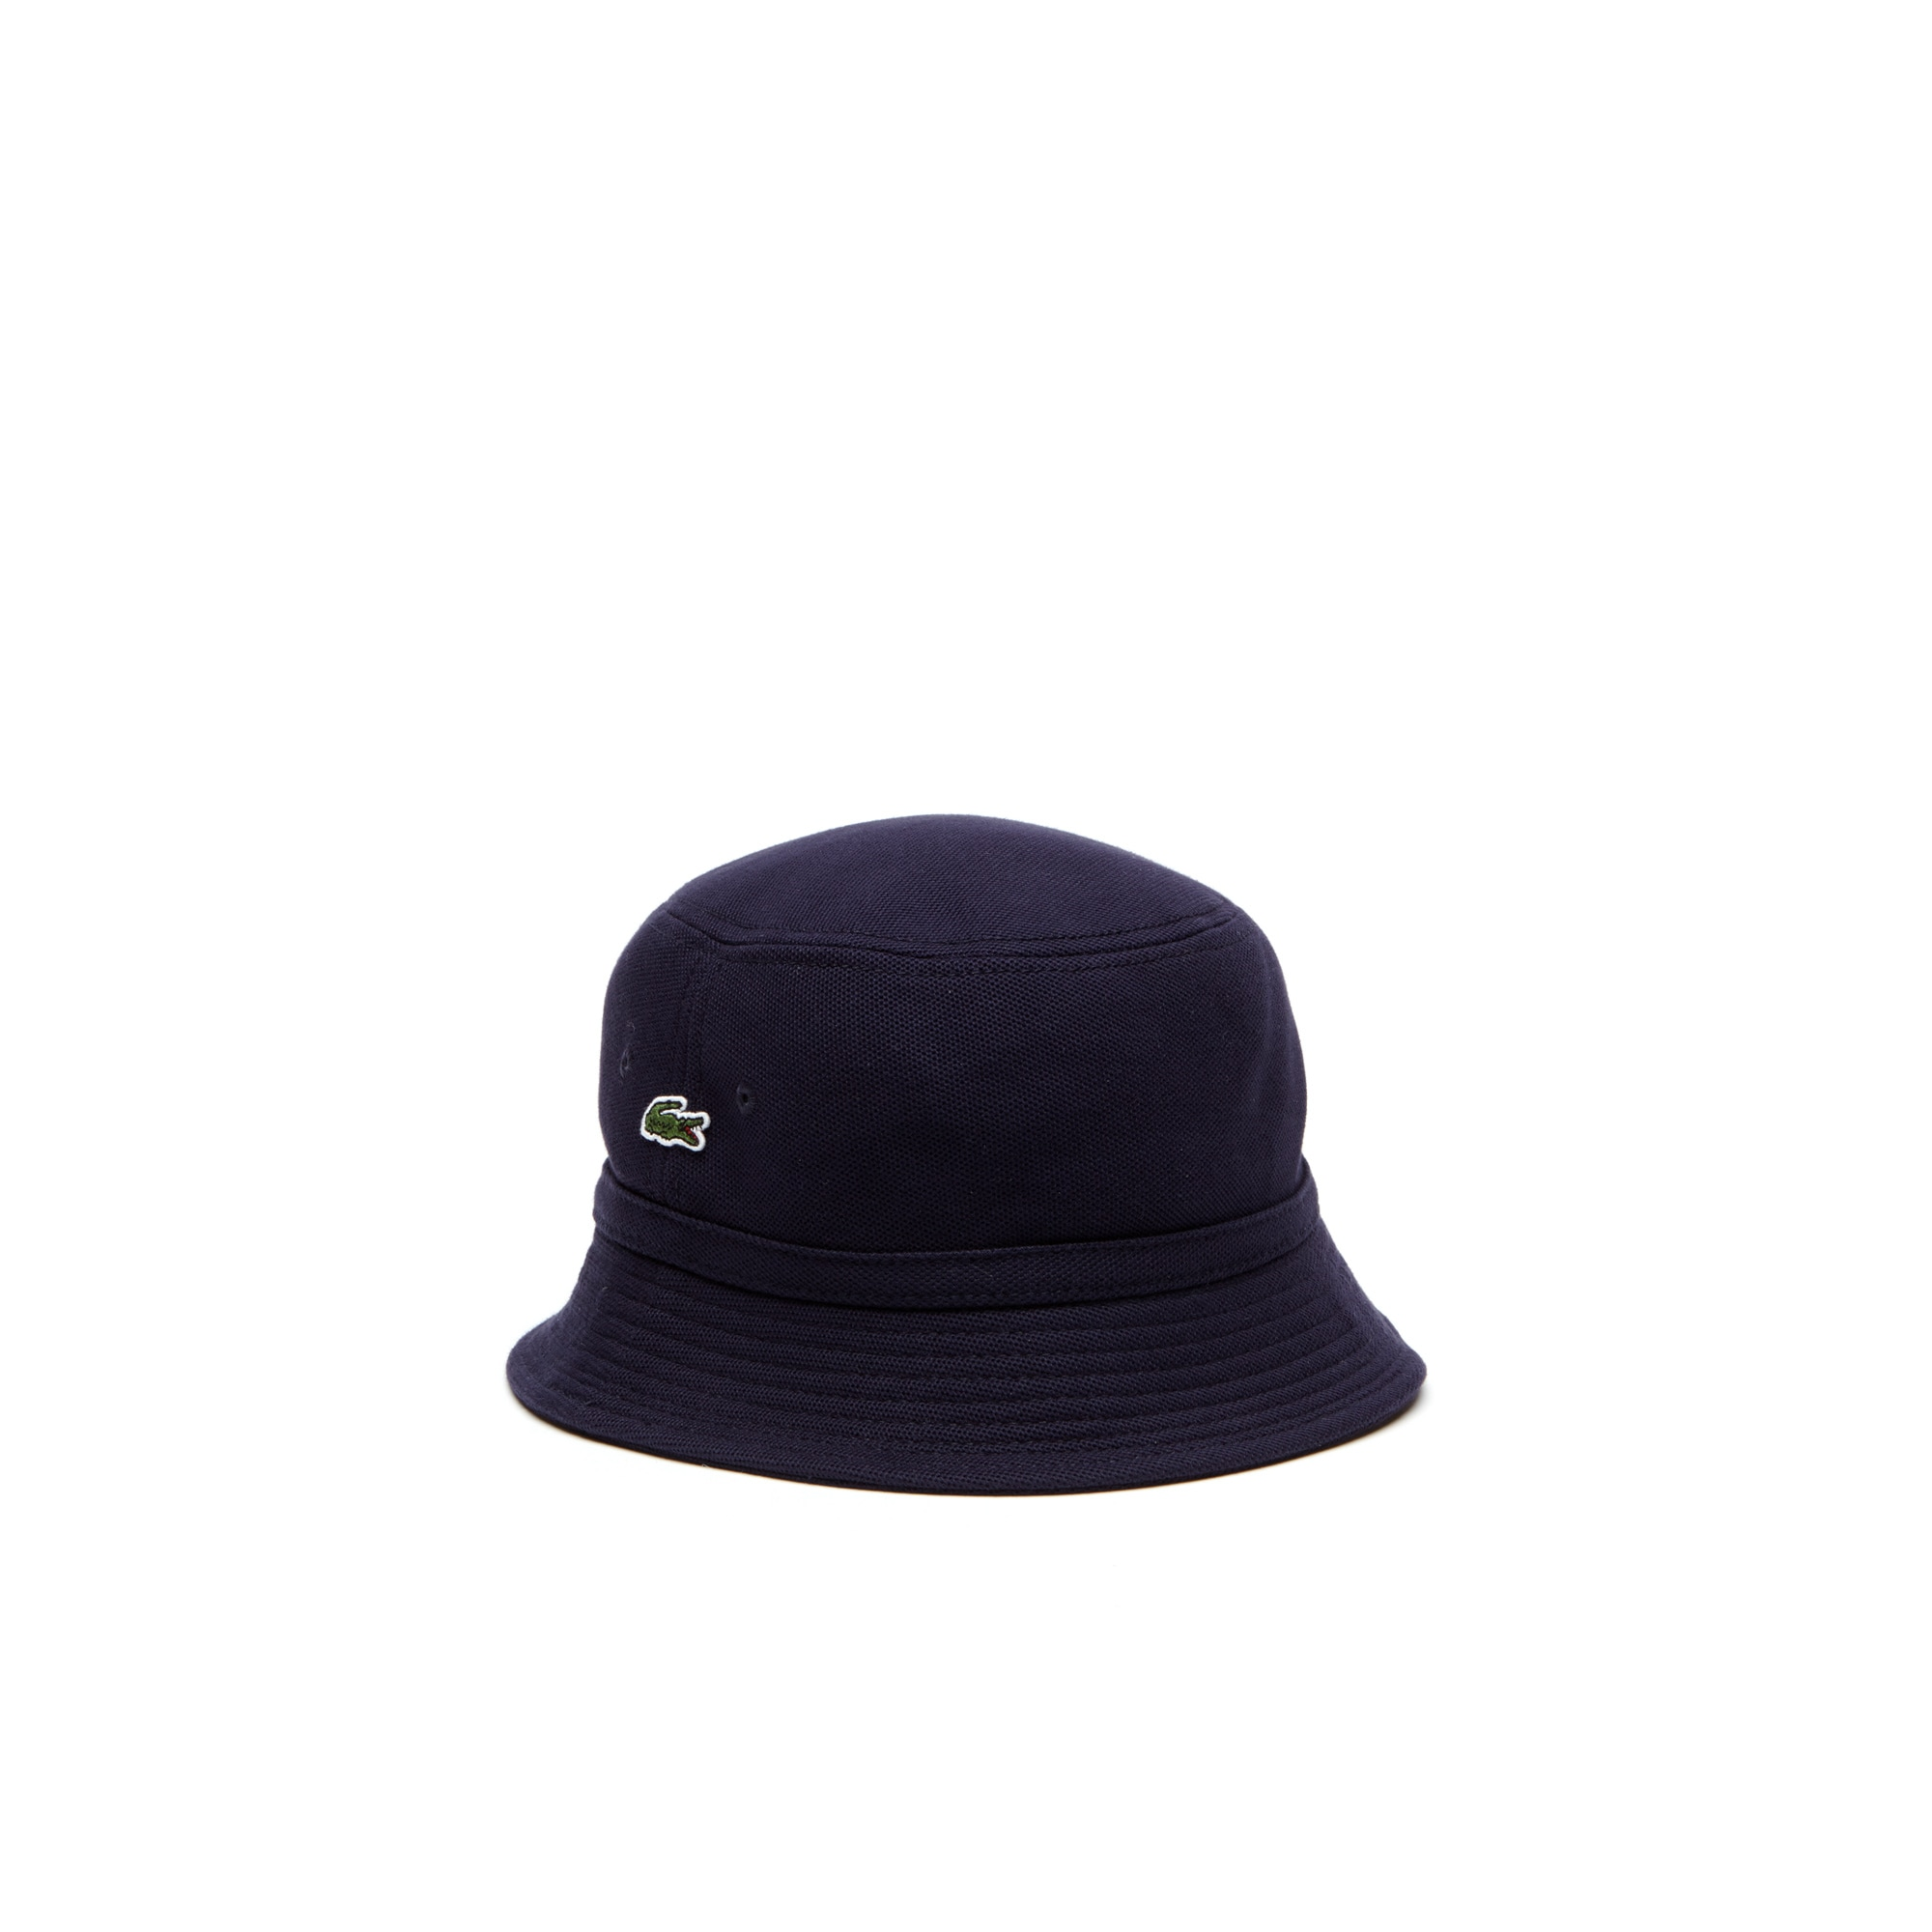 Men's Cotton piqué bucket hat